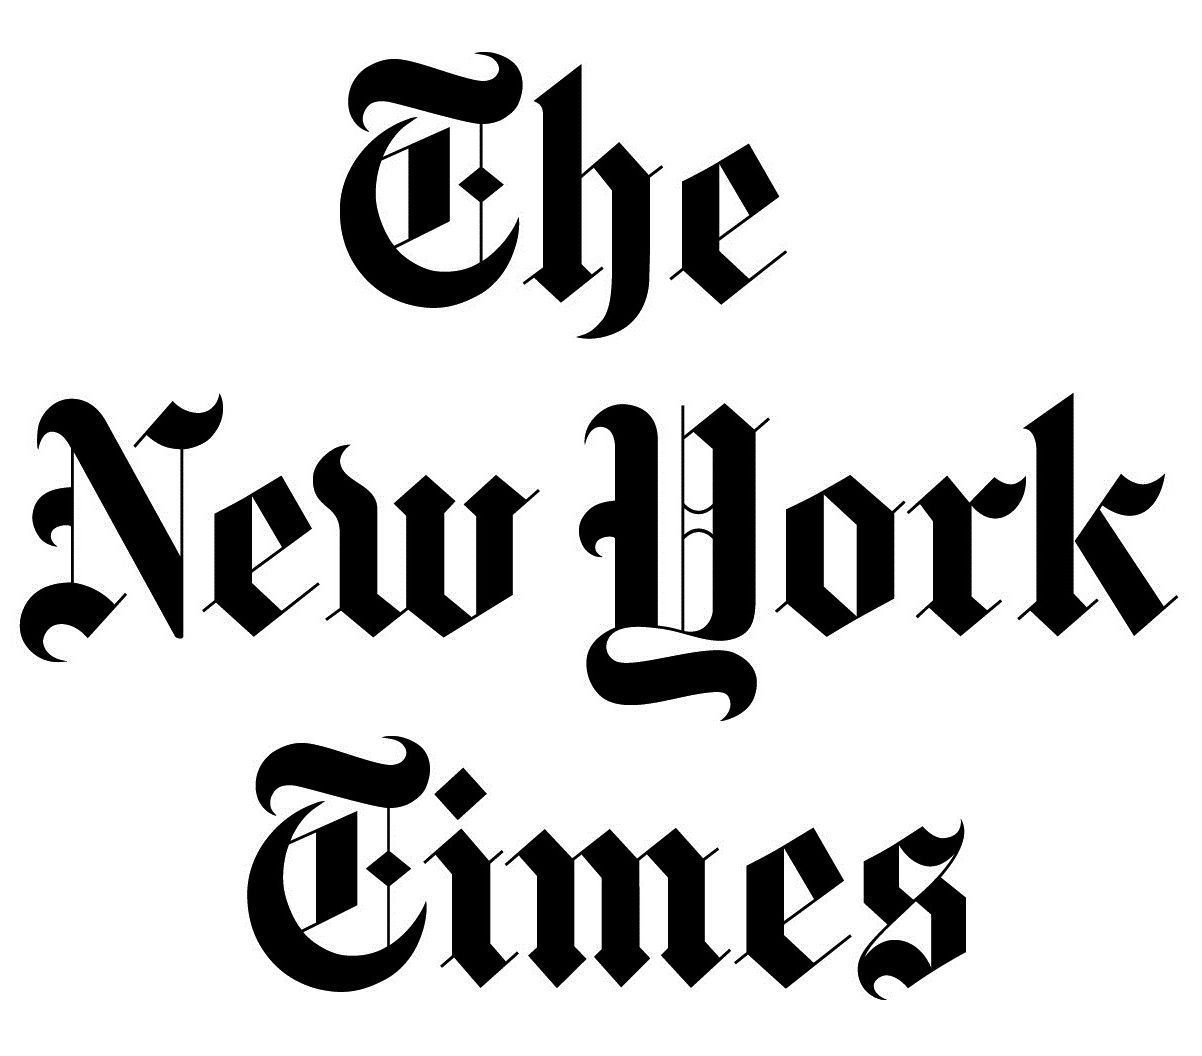 New York times projectq